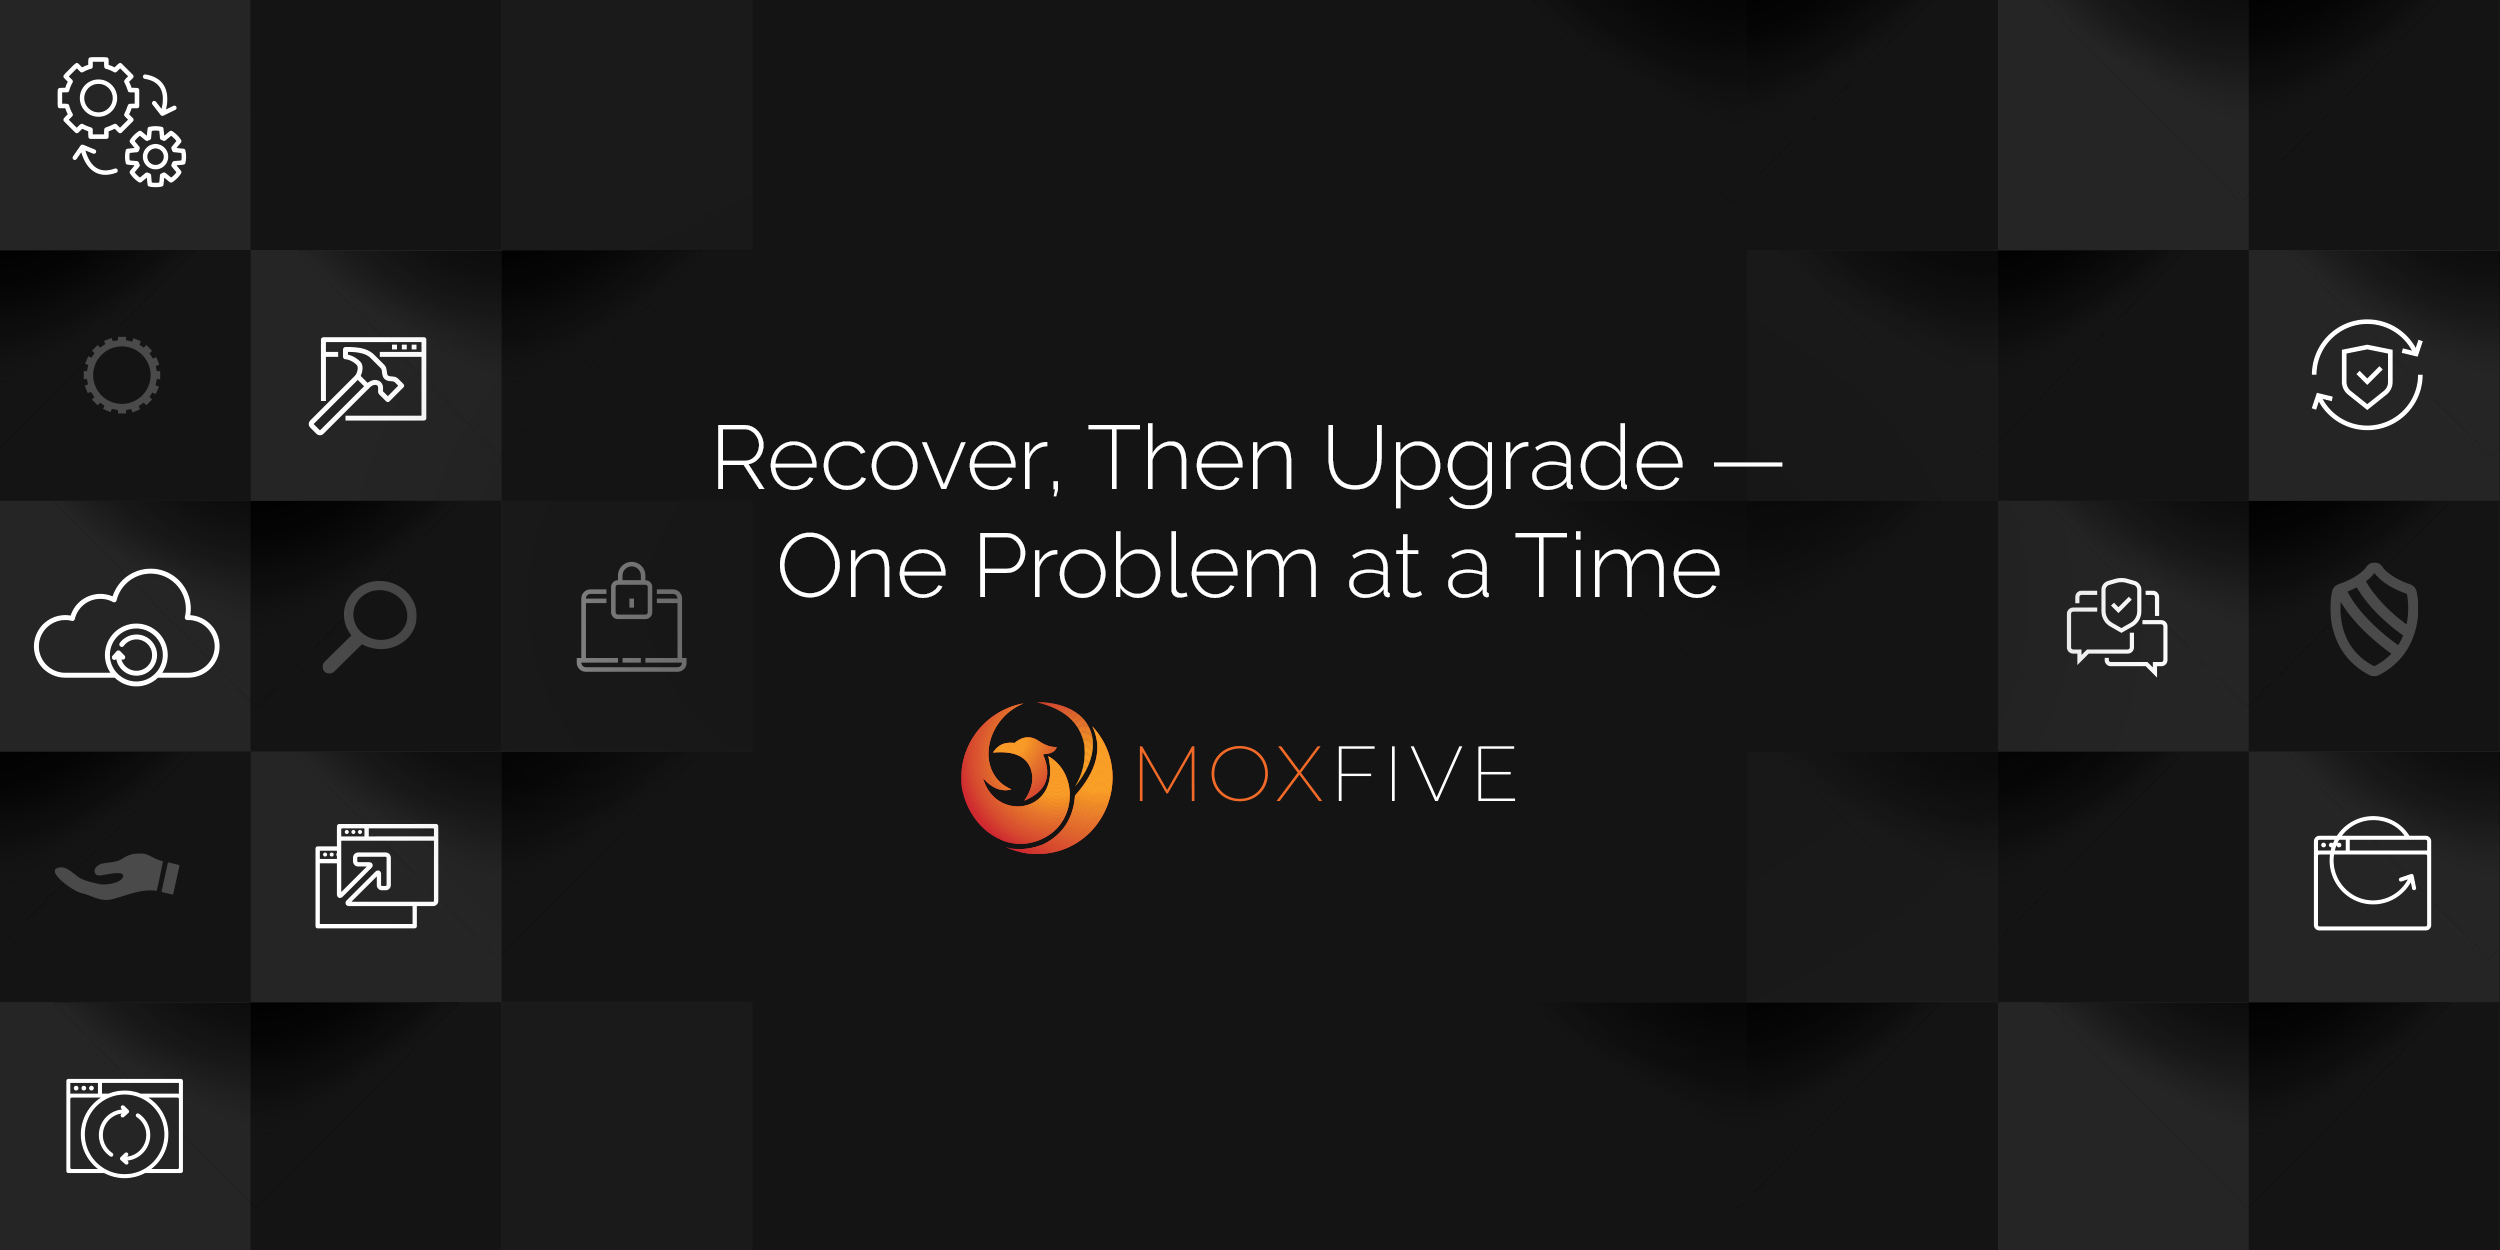 Recover, Then Upgrade - One Problem at a Time